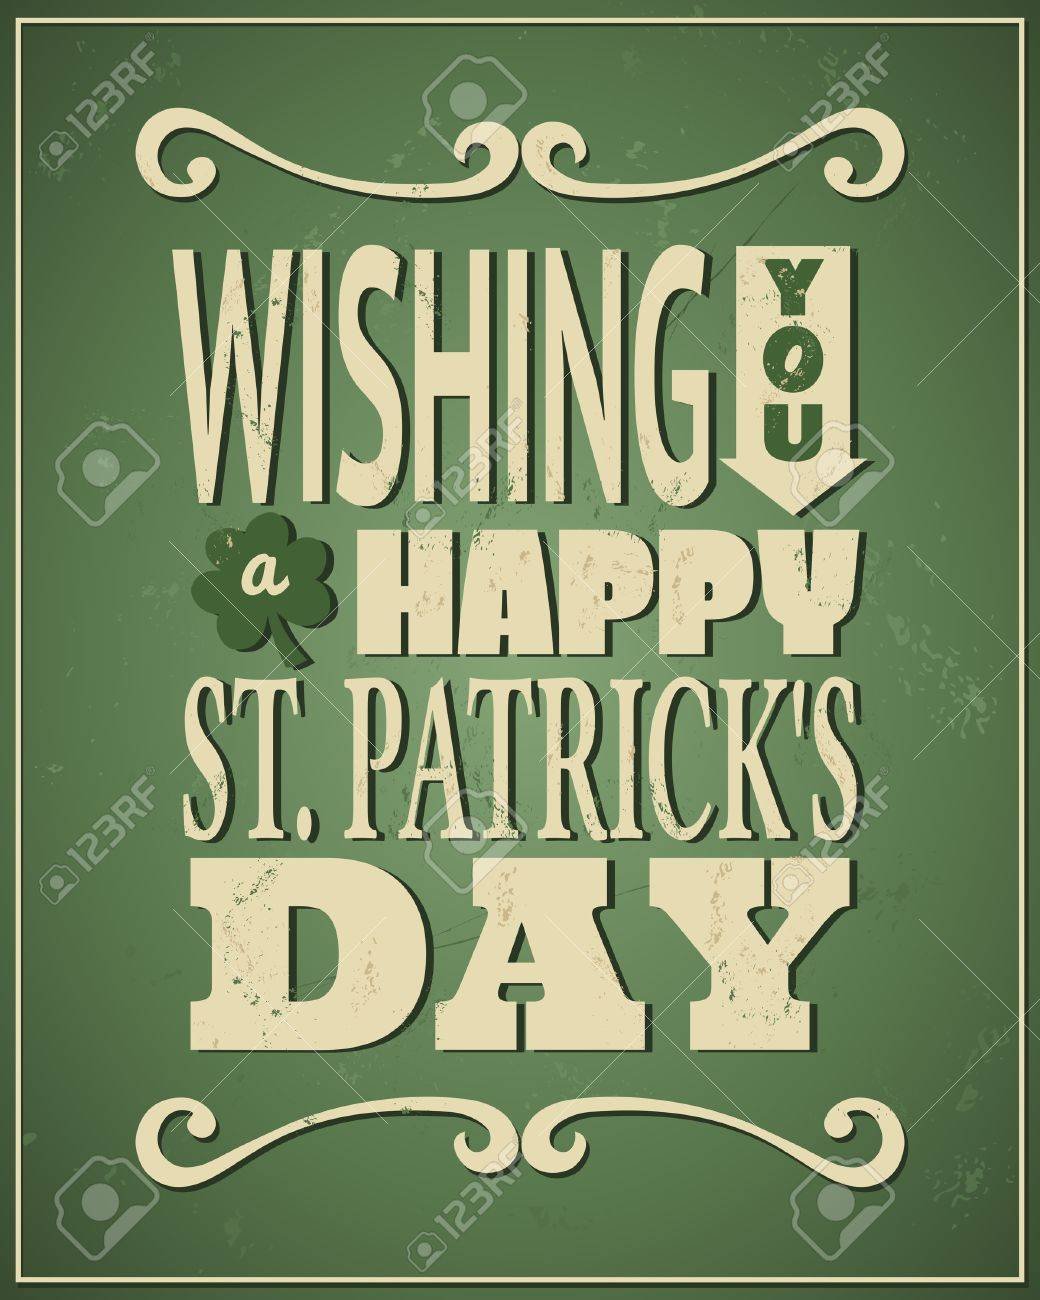 Cool typographic design for St. Patrick's Day. Stock Vector - 18156362